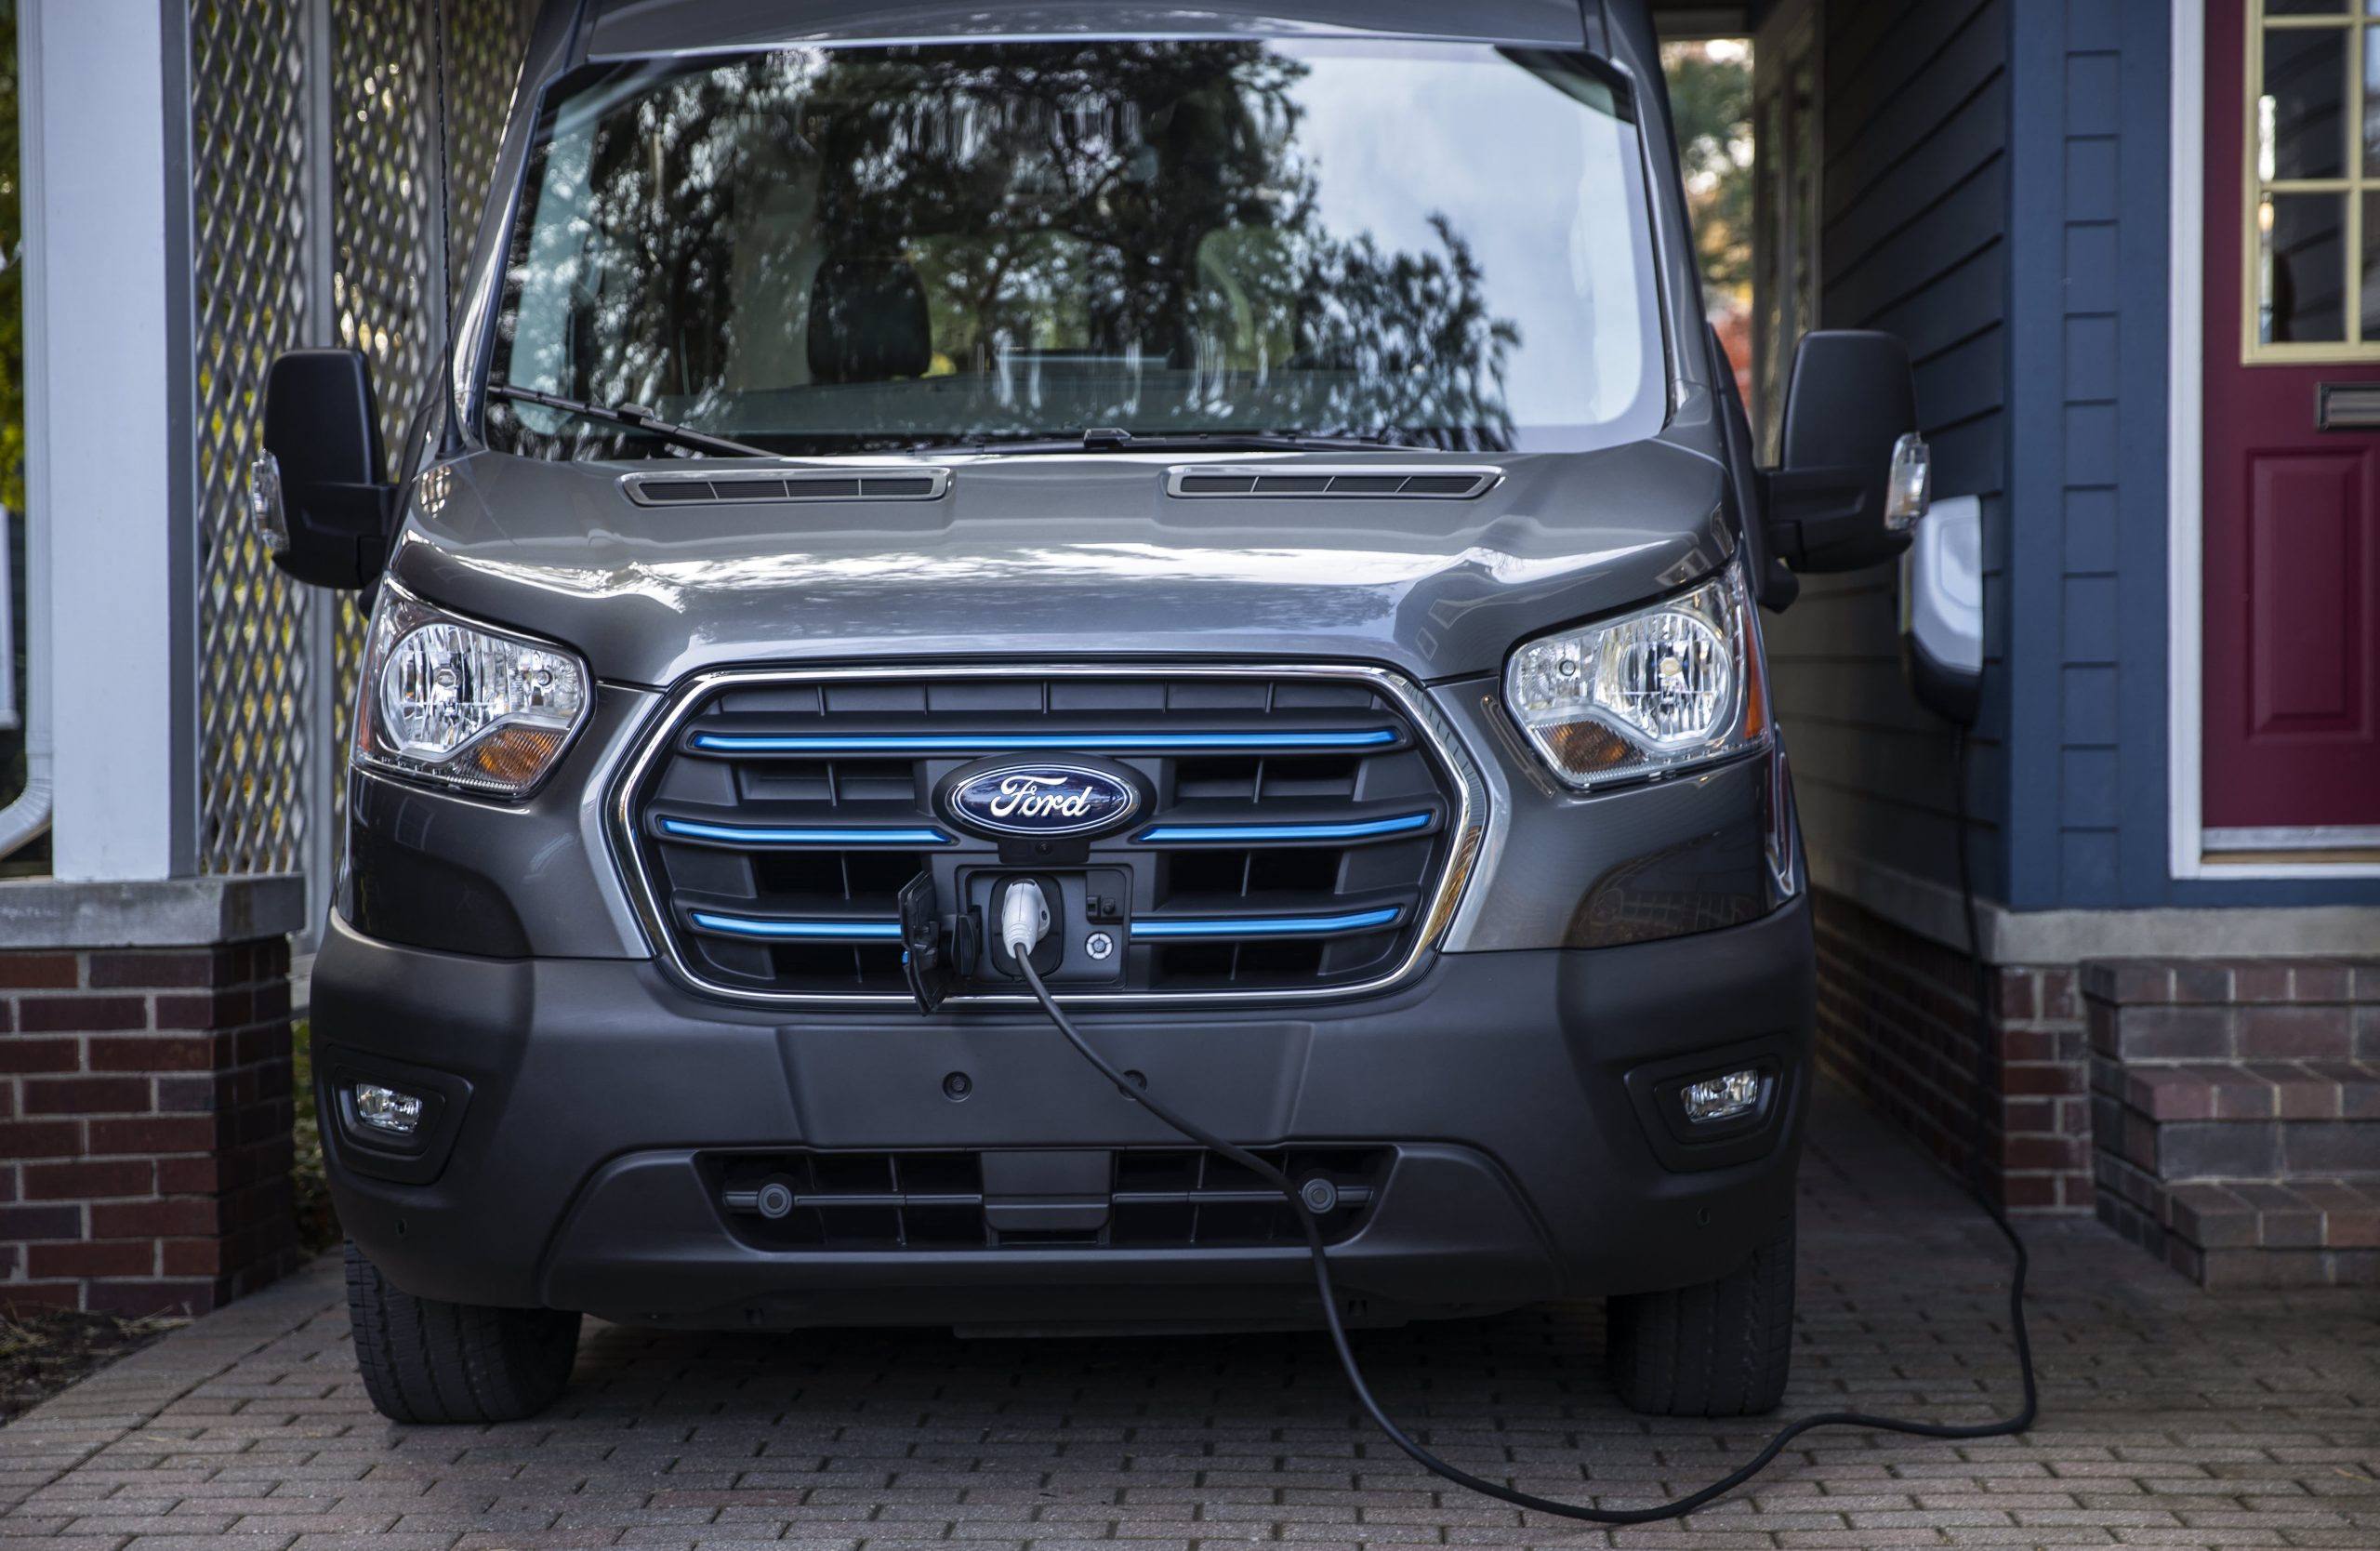 ford-wont-cede-the-future-to-anyone-on-electric-vehicles-ceo-farley